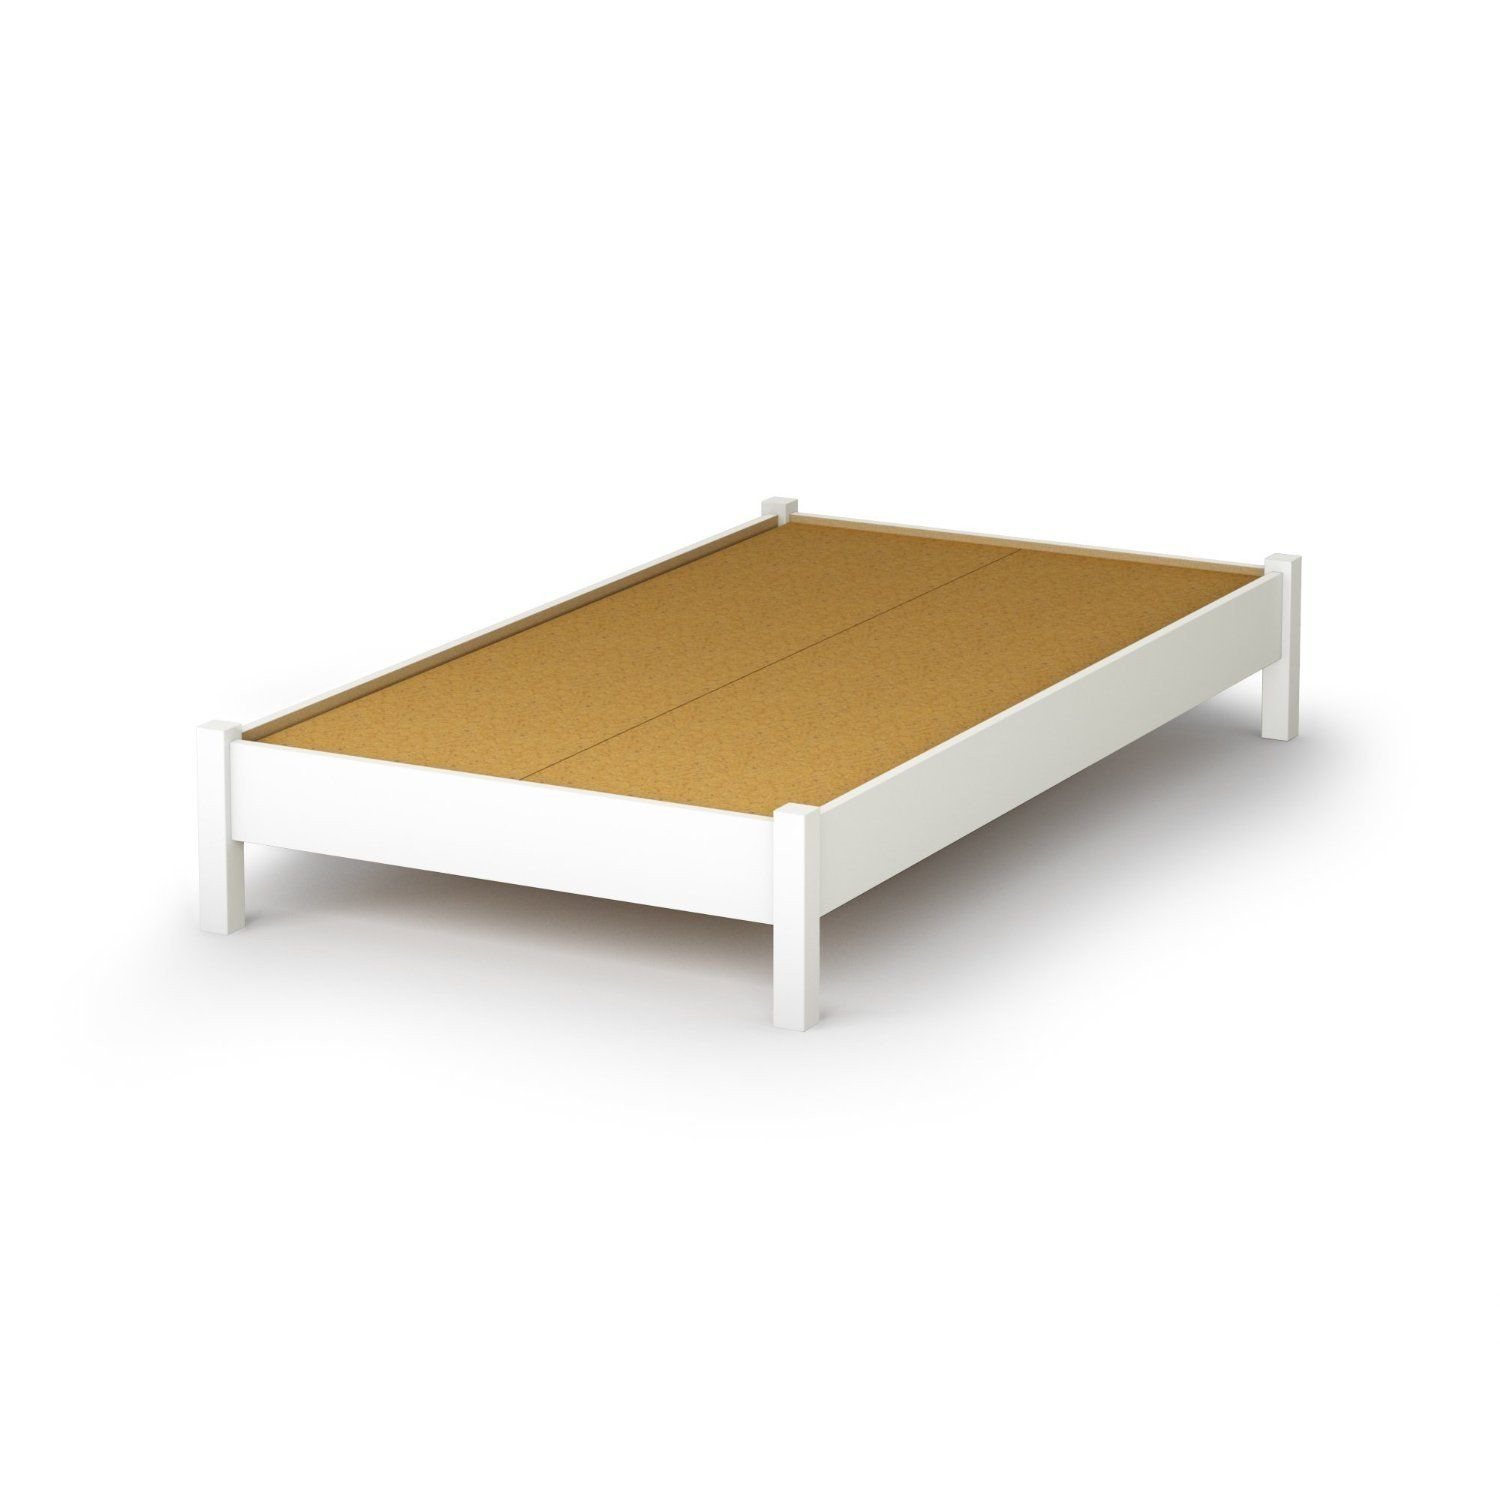 twin size simple platform bed frame in white wood finish platform